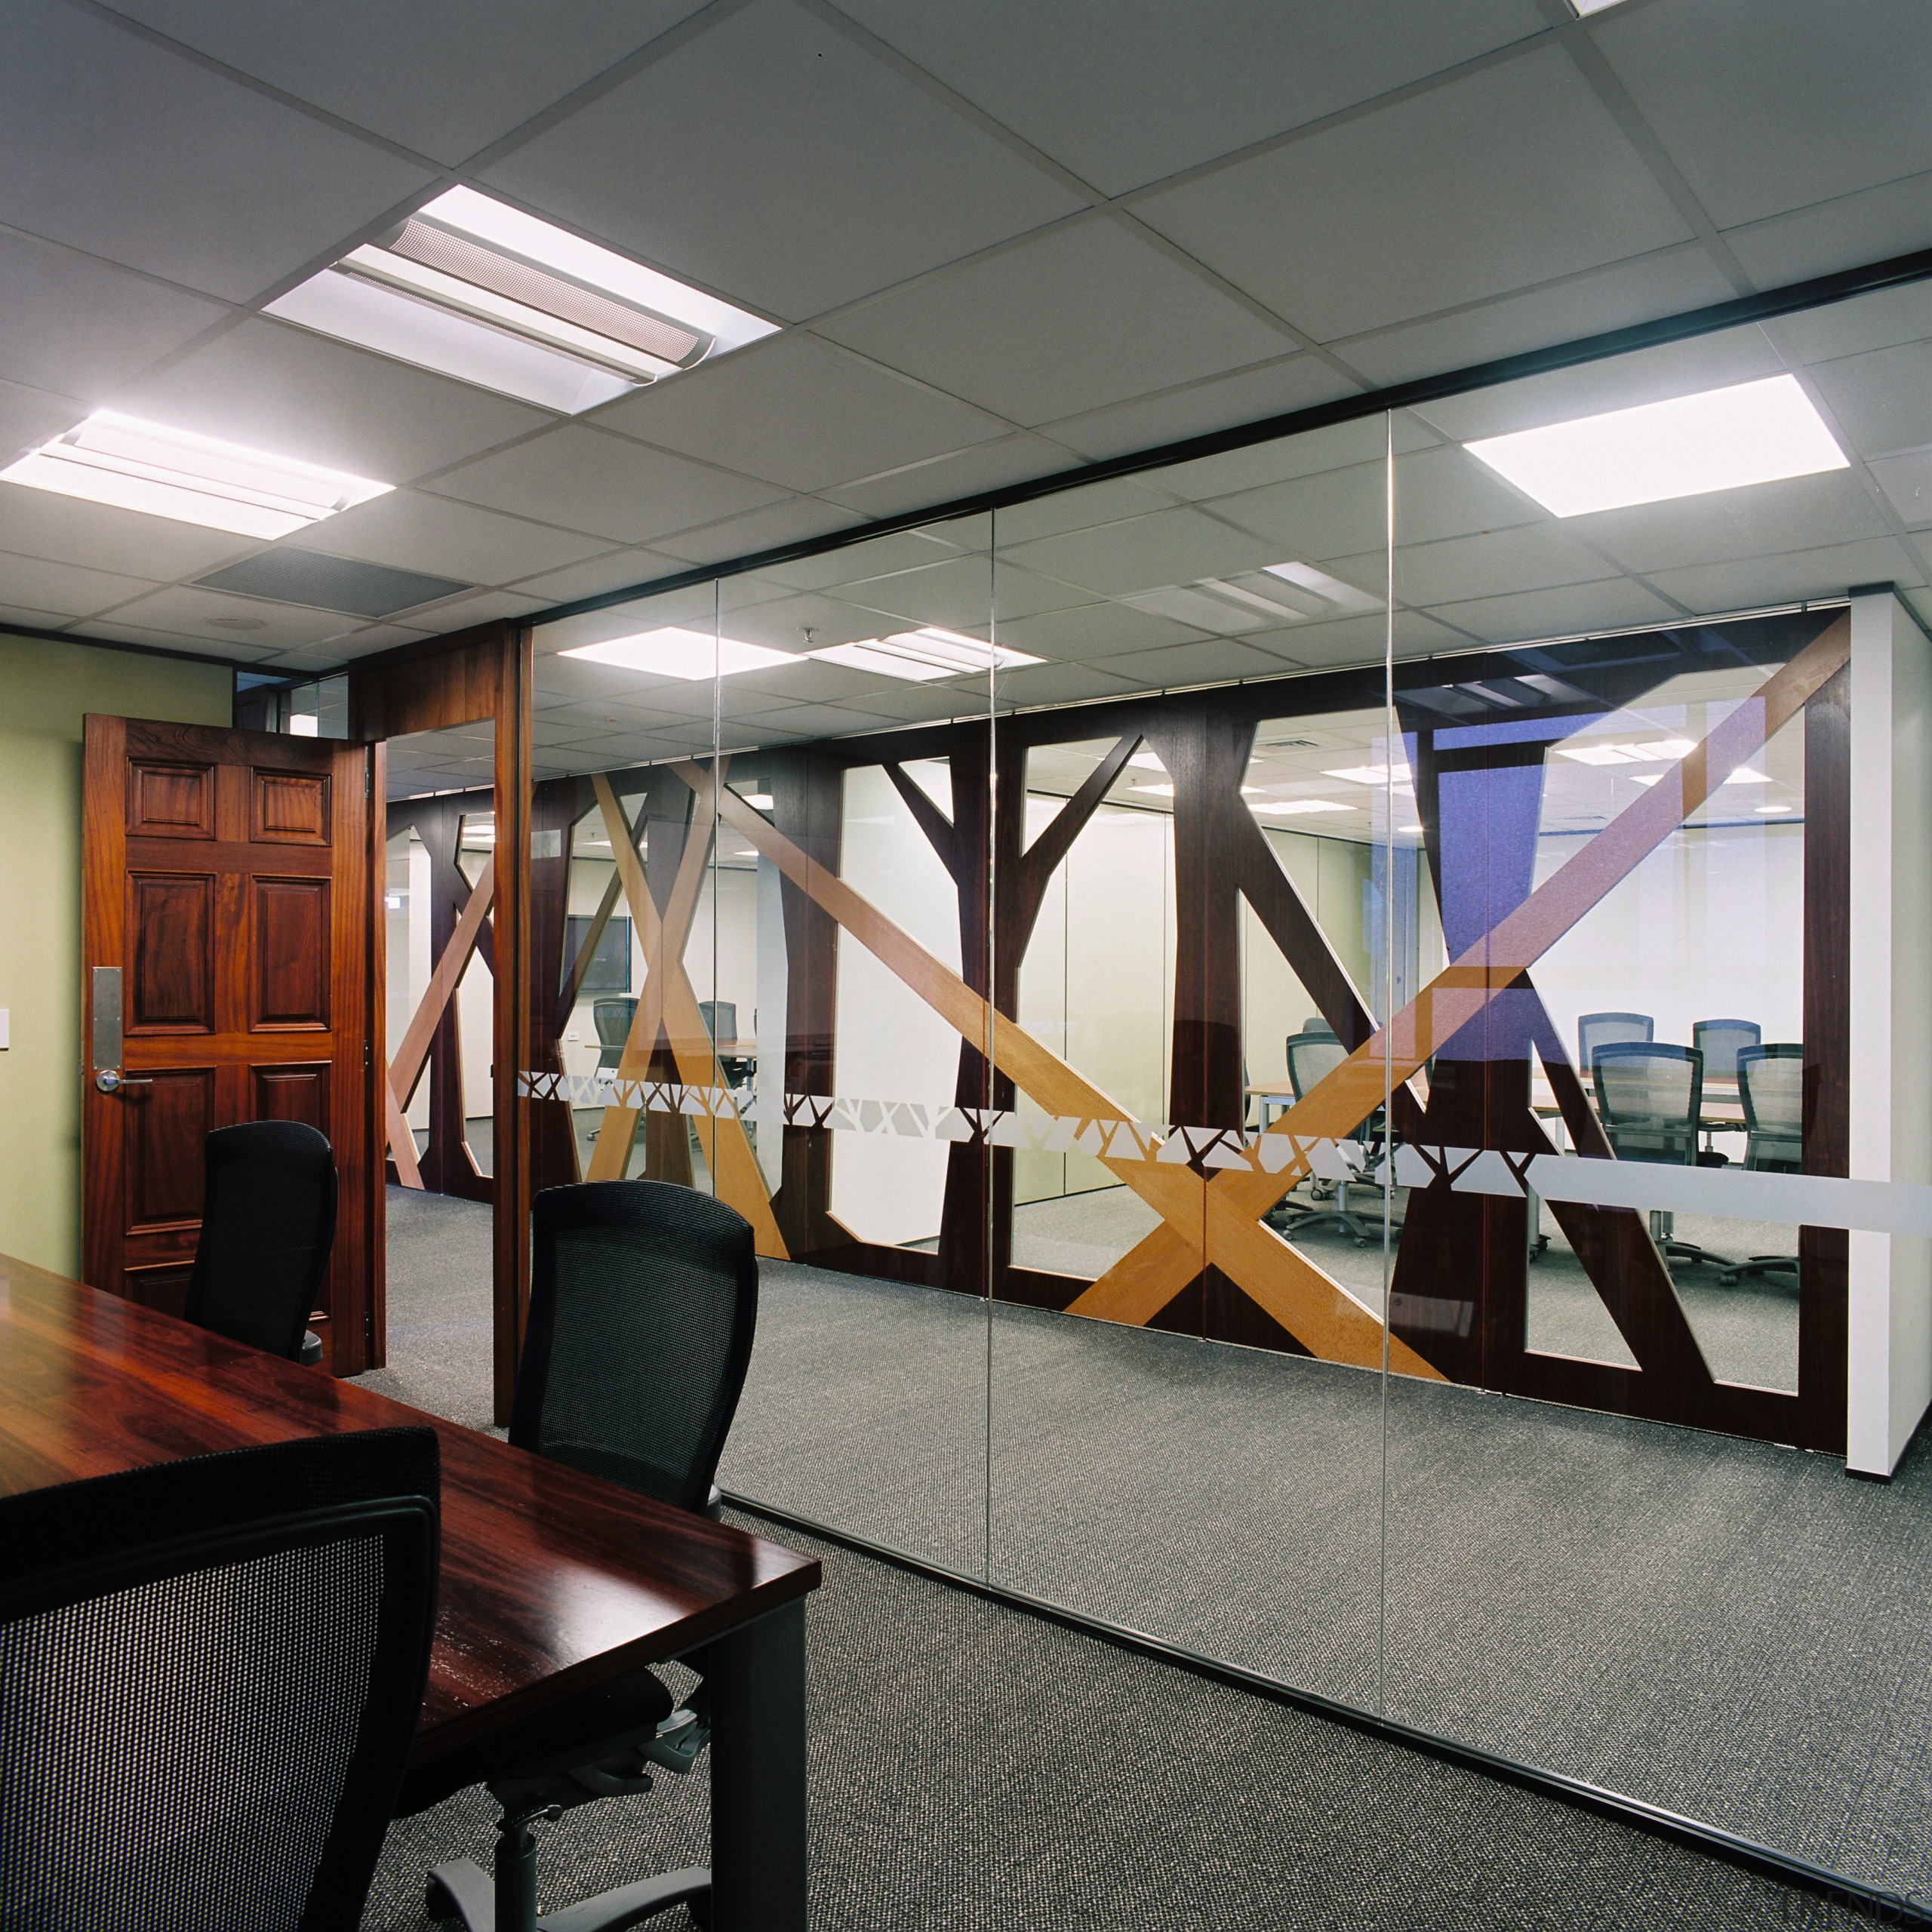 A view of the formal boardroom featuring wood ceiling, glass, institution, interior design, structure, gray, black